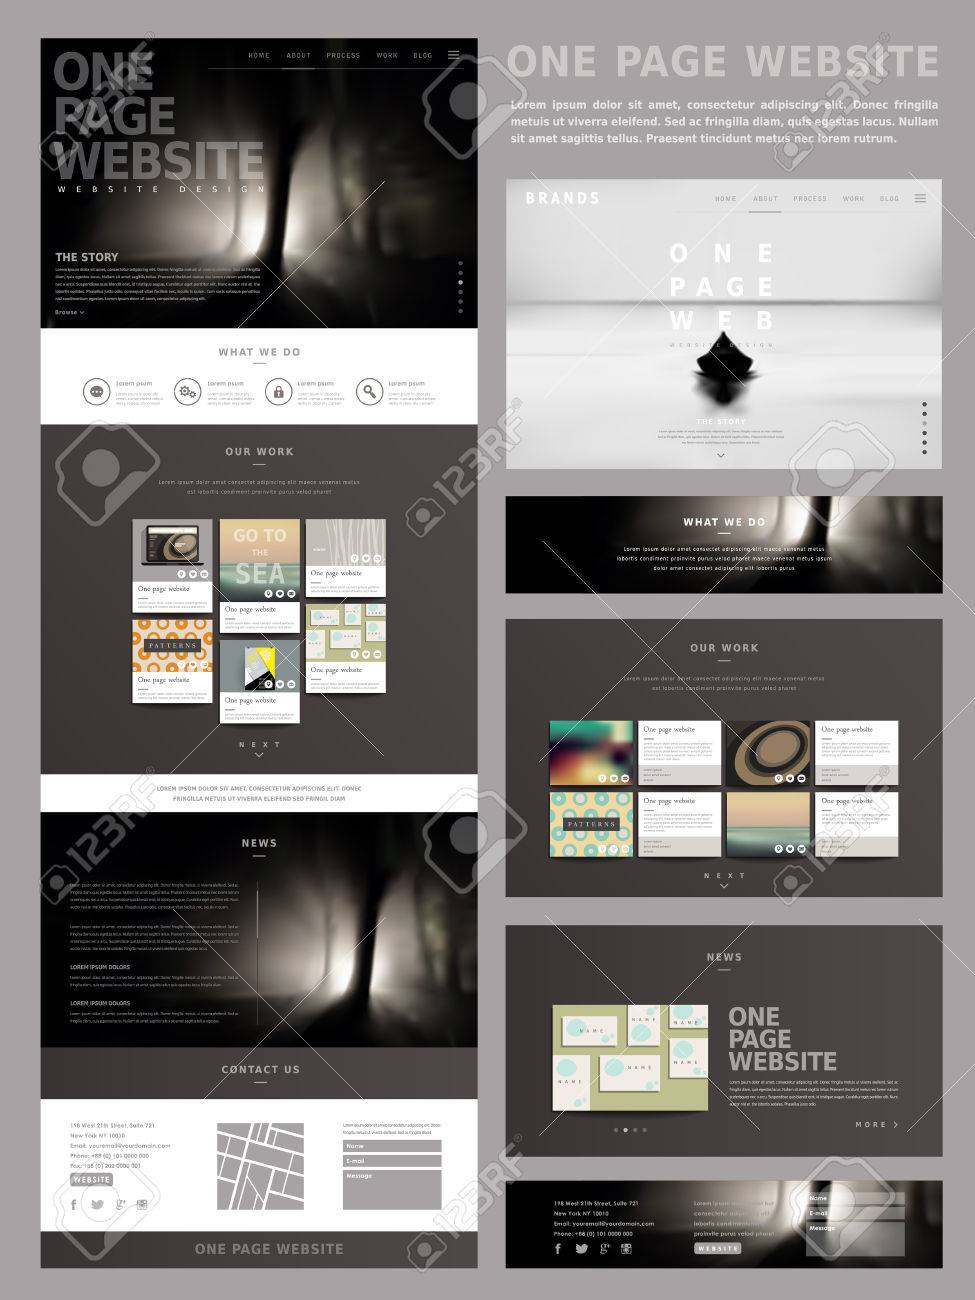 Modern Style One Page Website Design Template In Dark Color Royalty ...